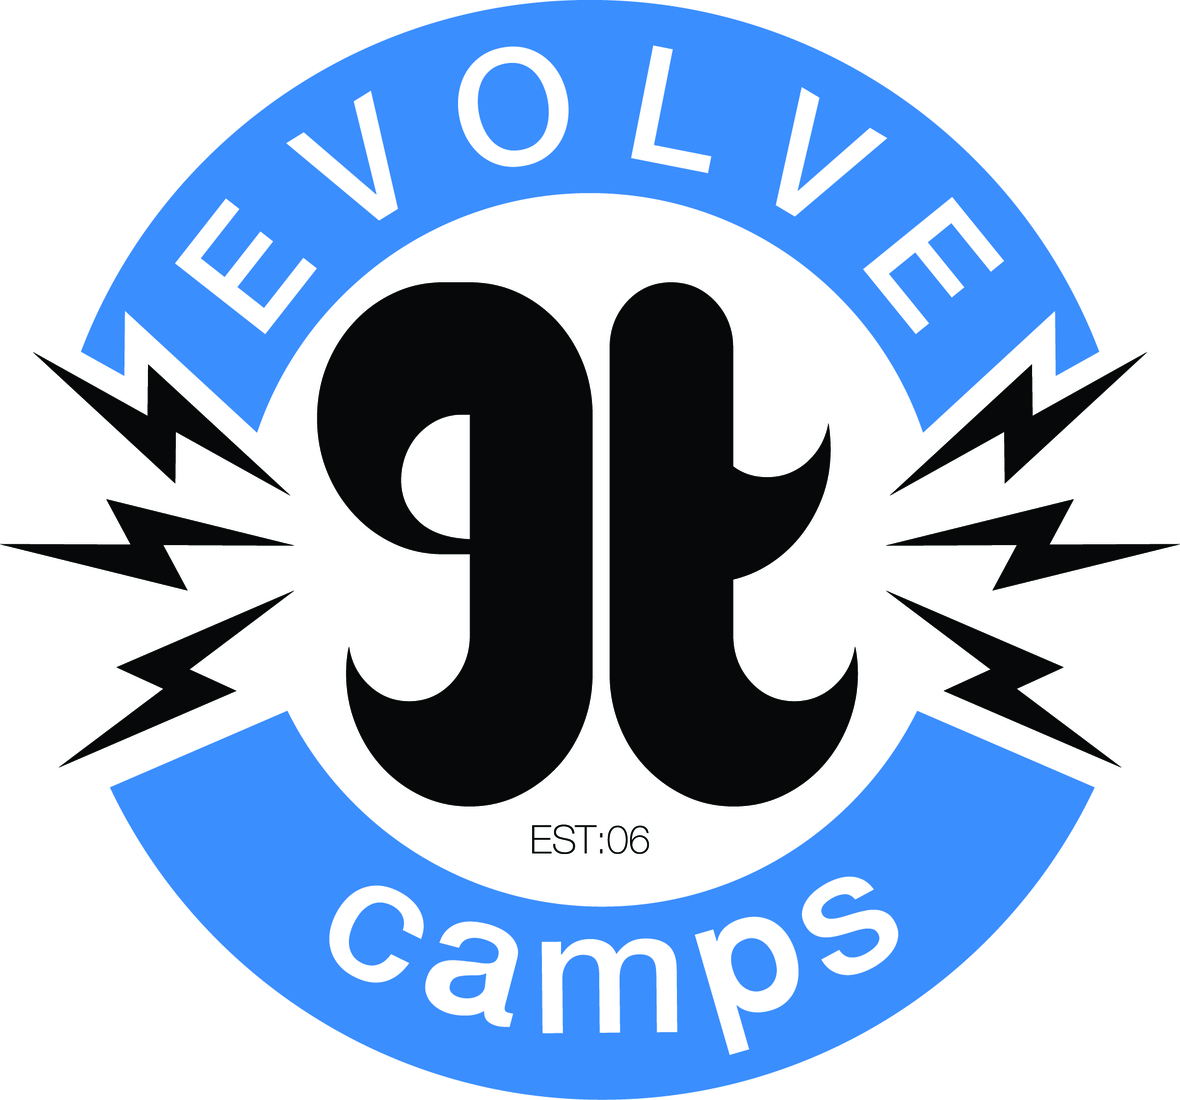 Evolve.camps.logo